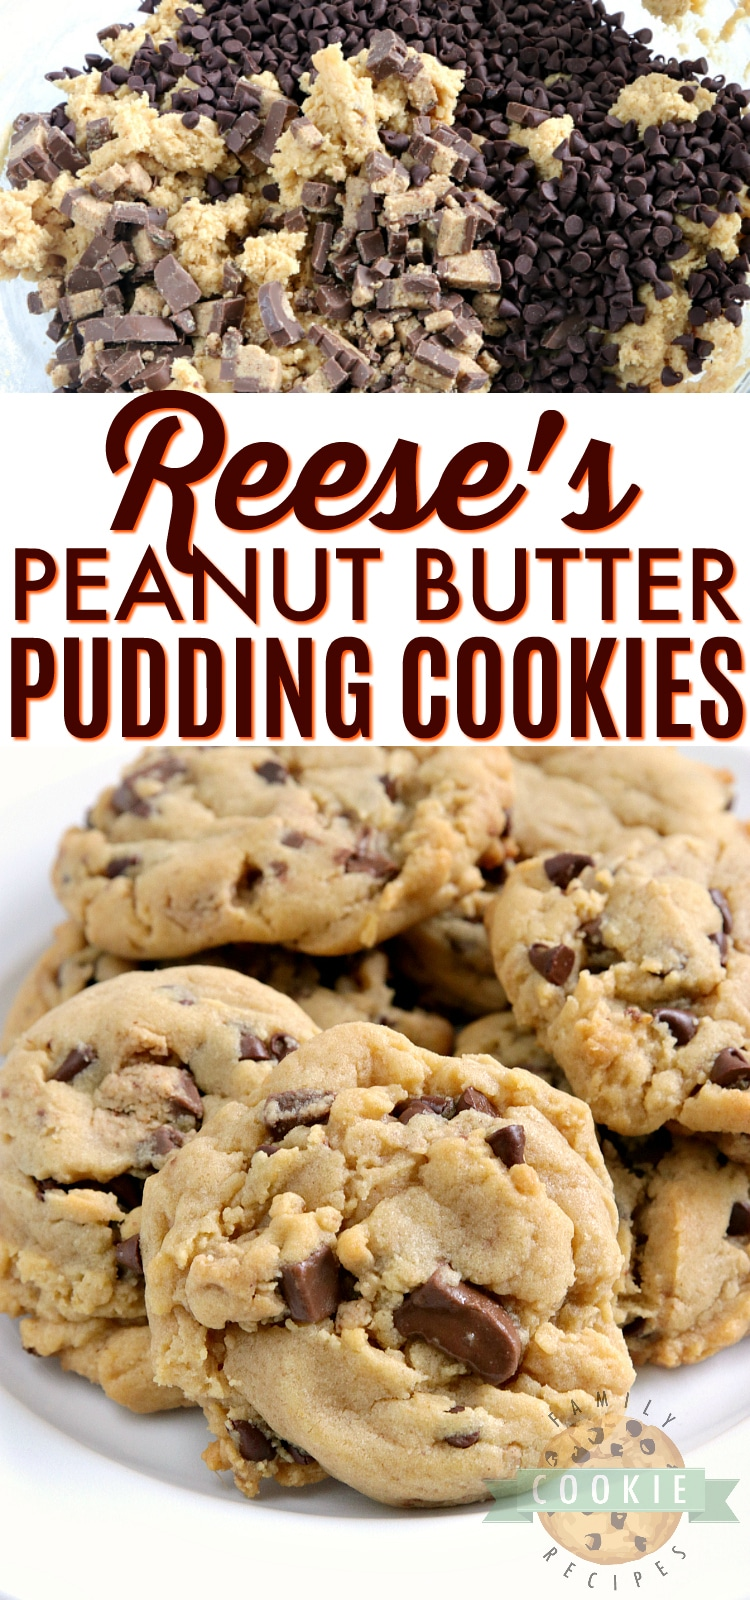 Reese's Peanut Butter Pudding Cookies are soft and chewy peanut butter cookies made with vanilla pudding mix and chopped up Reese's peanut butter cups too! via @familycookierecipes